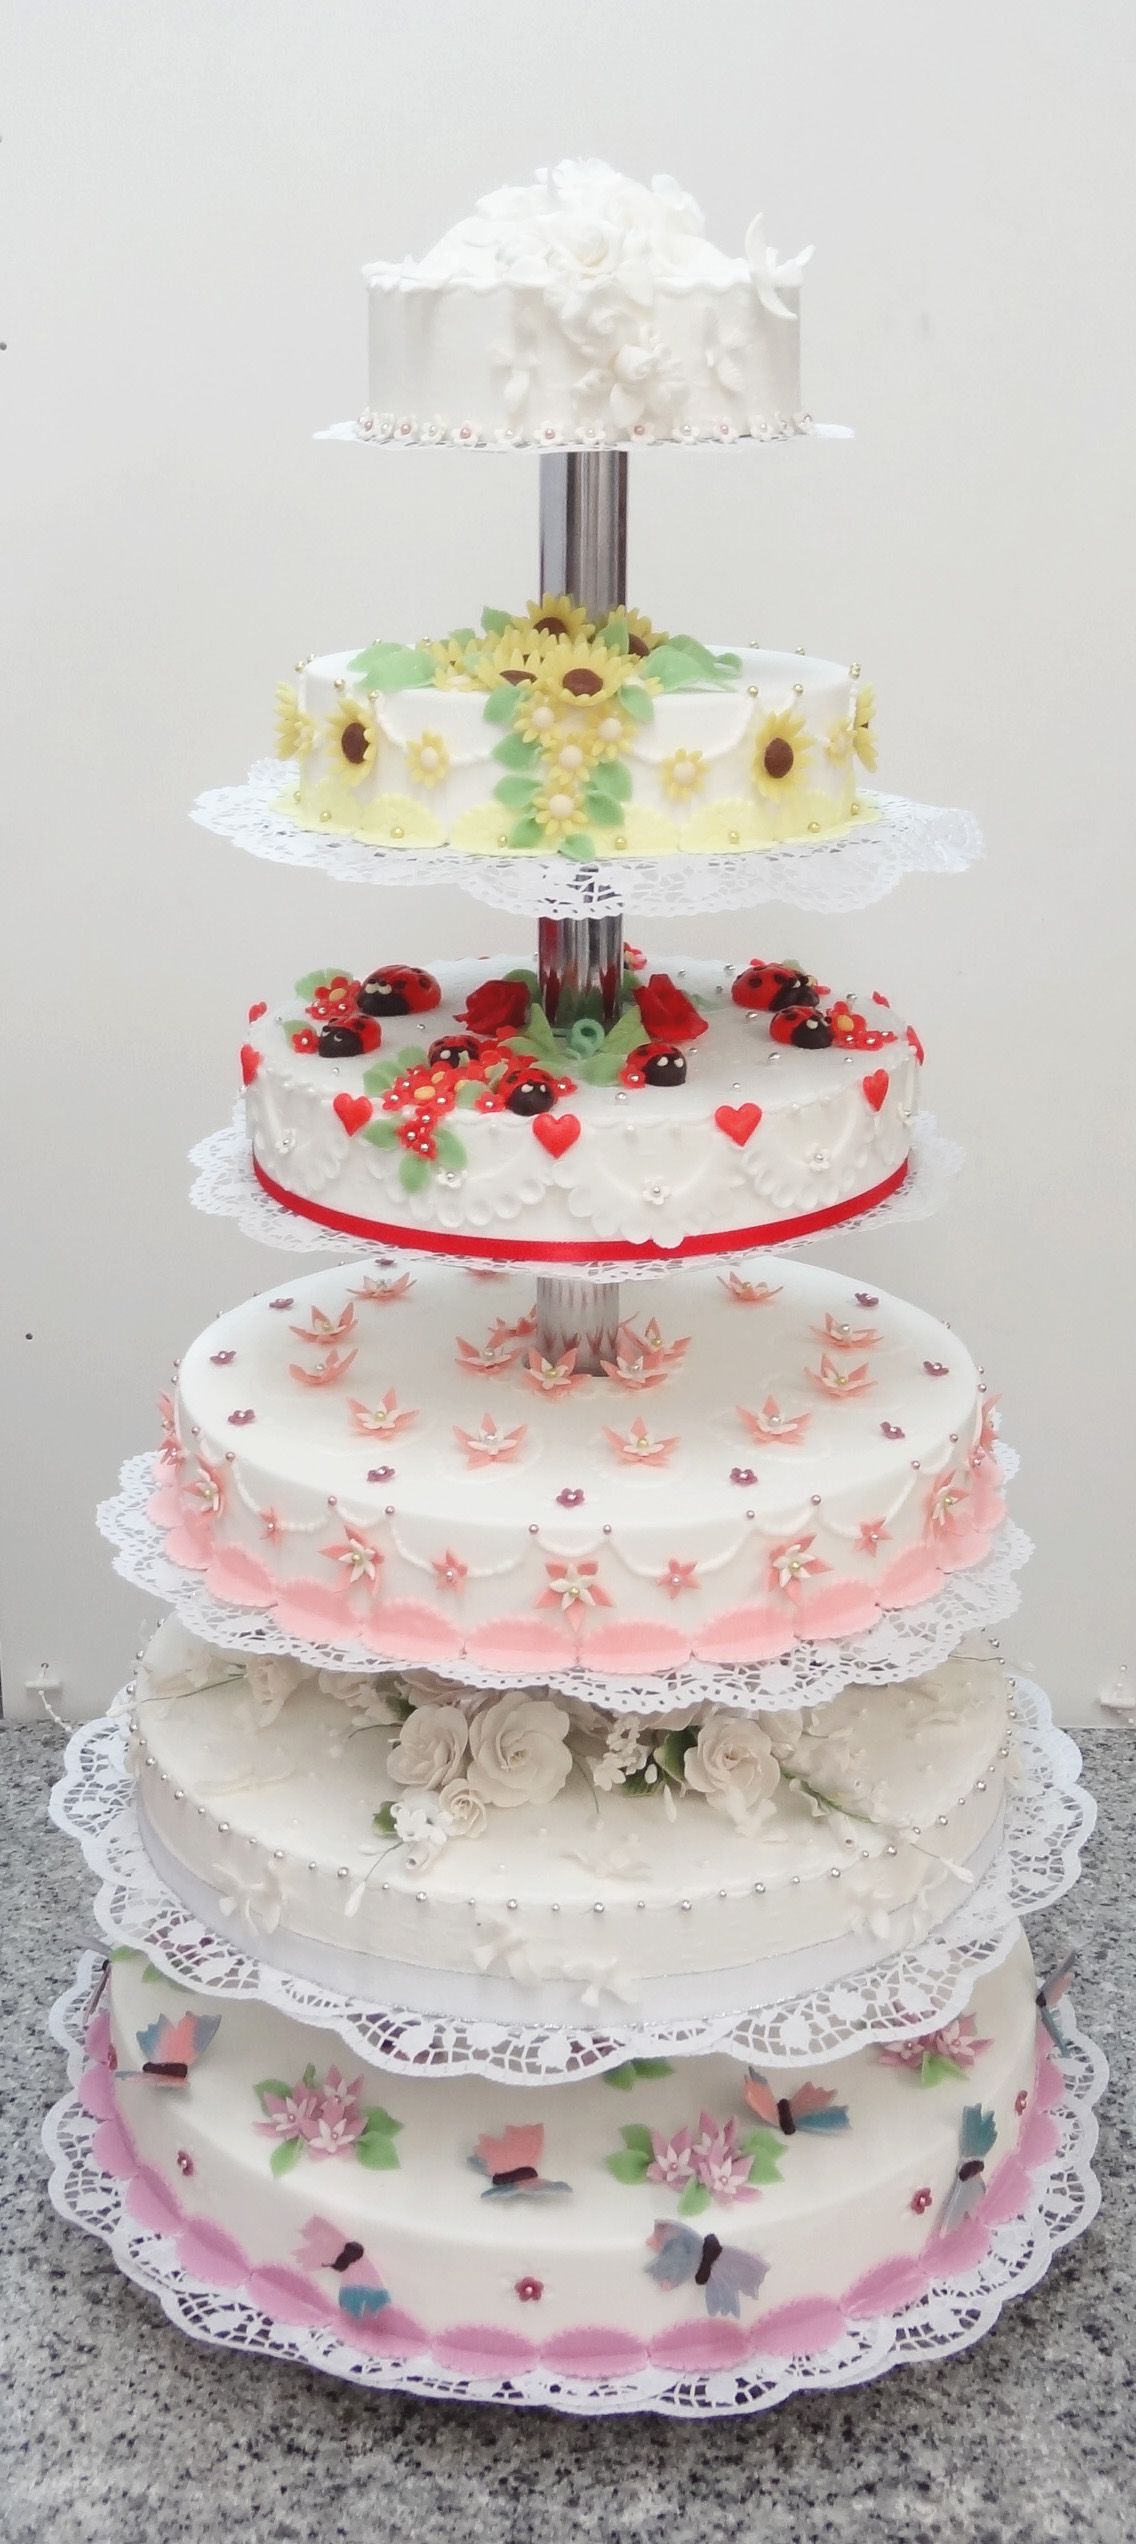 6 Stockige Torte Handgemacht Im Cafe Riese 6 Storey Cake Hand Made At Cafe Riese In Cologne Germany Cake Tiered Cake Stand Torte